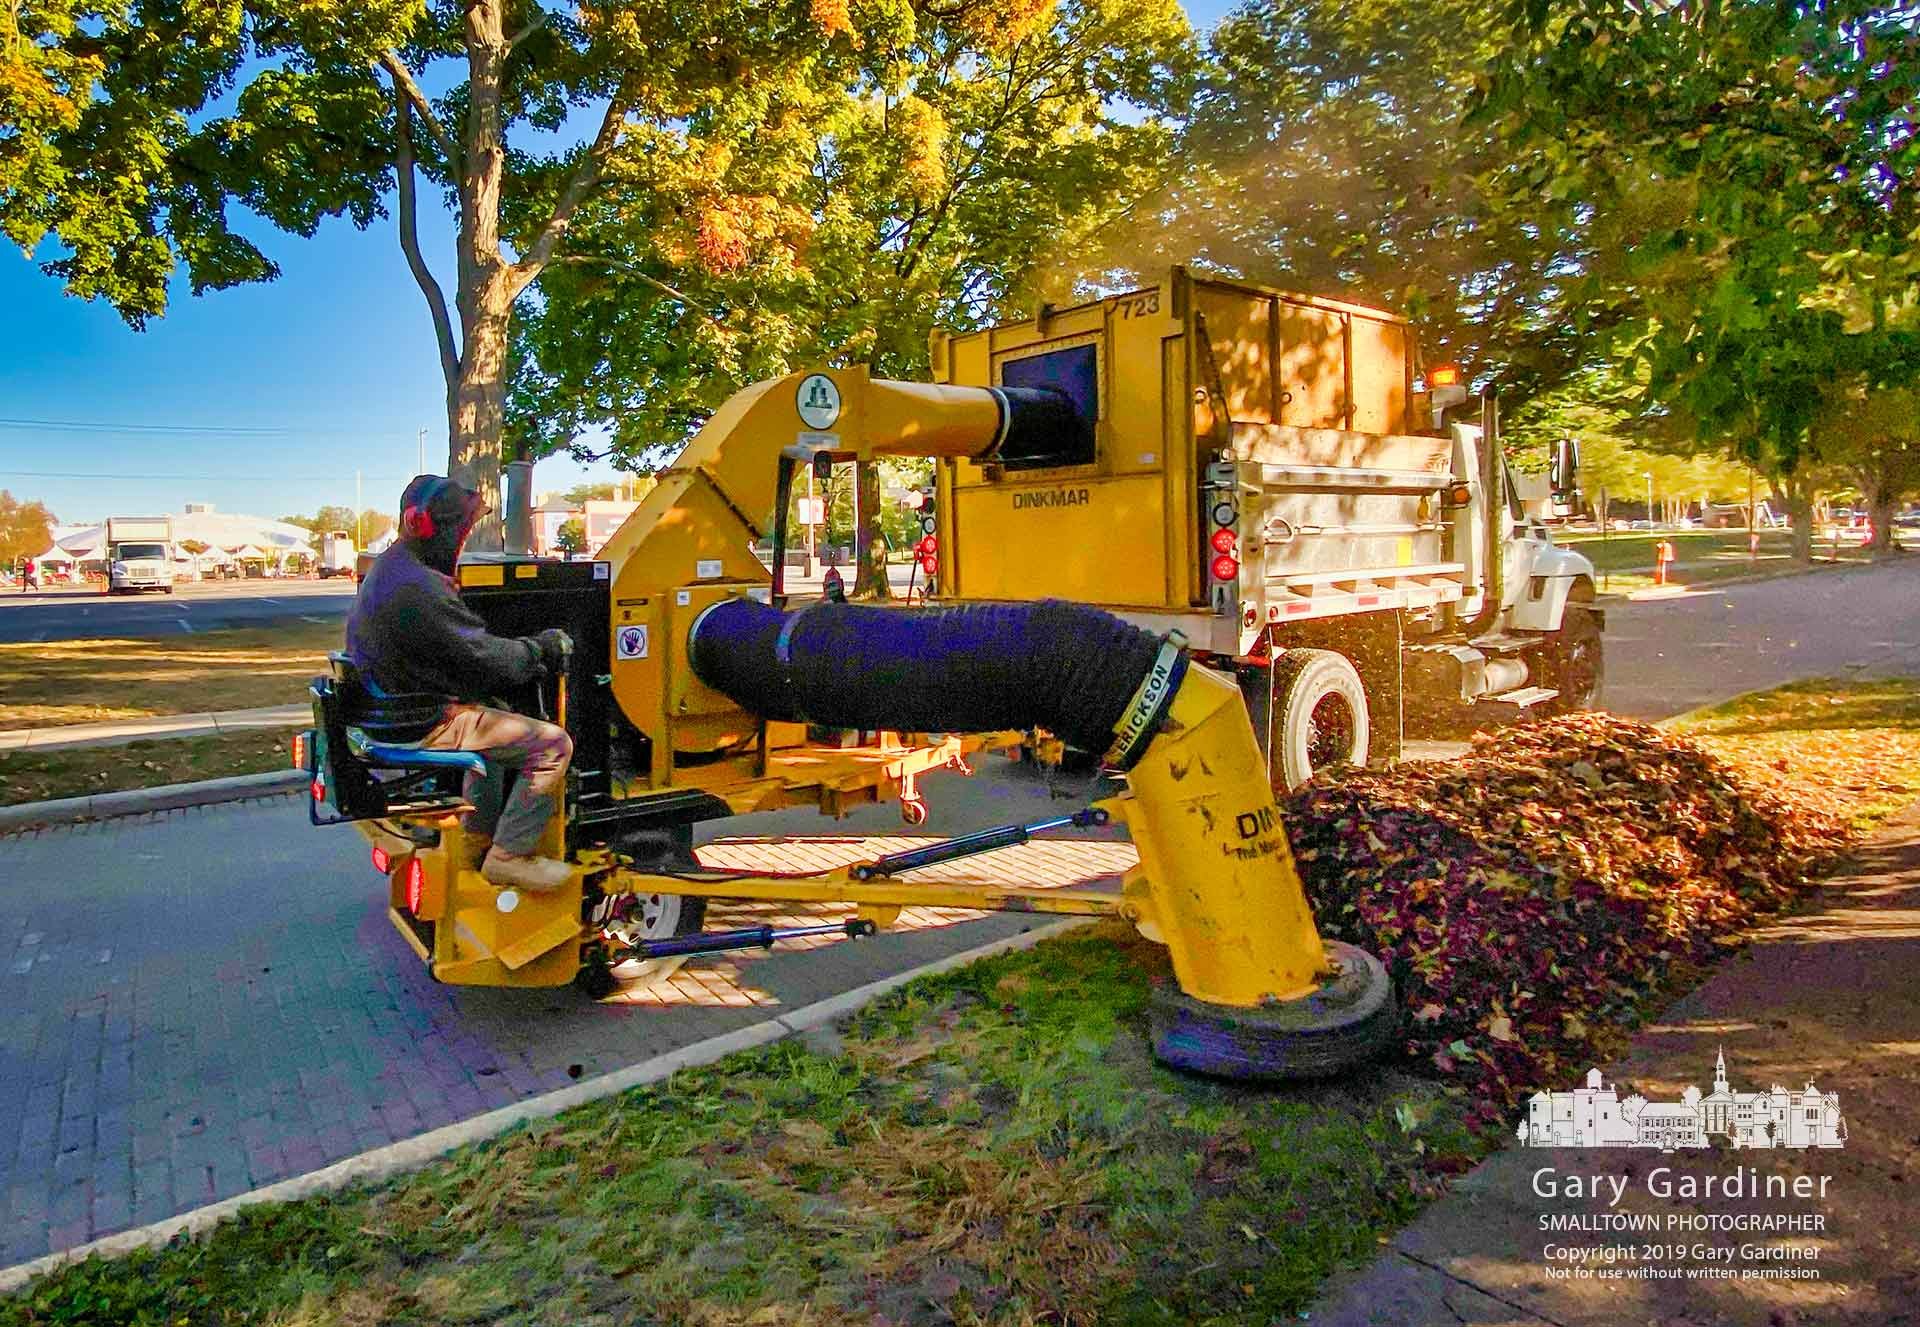 A city work crew began leaf collection a few days early clearing leaves along Home Street near Otterbein University where the Democratic presidential debate will be held Tuesday. My Final Photo for Oct. 14, 2019.